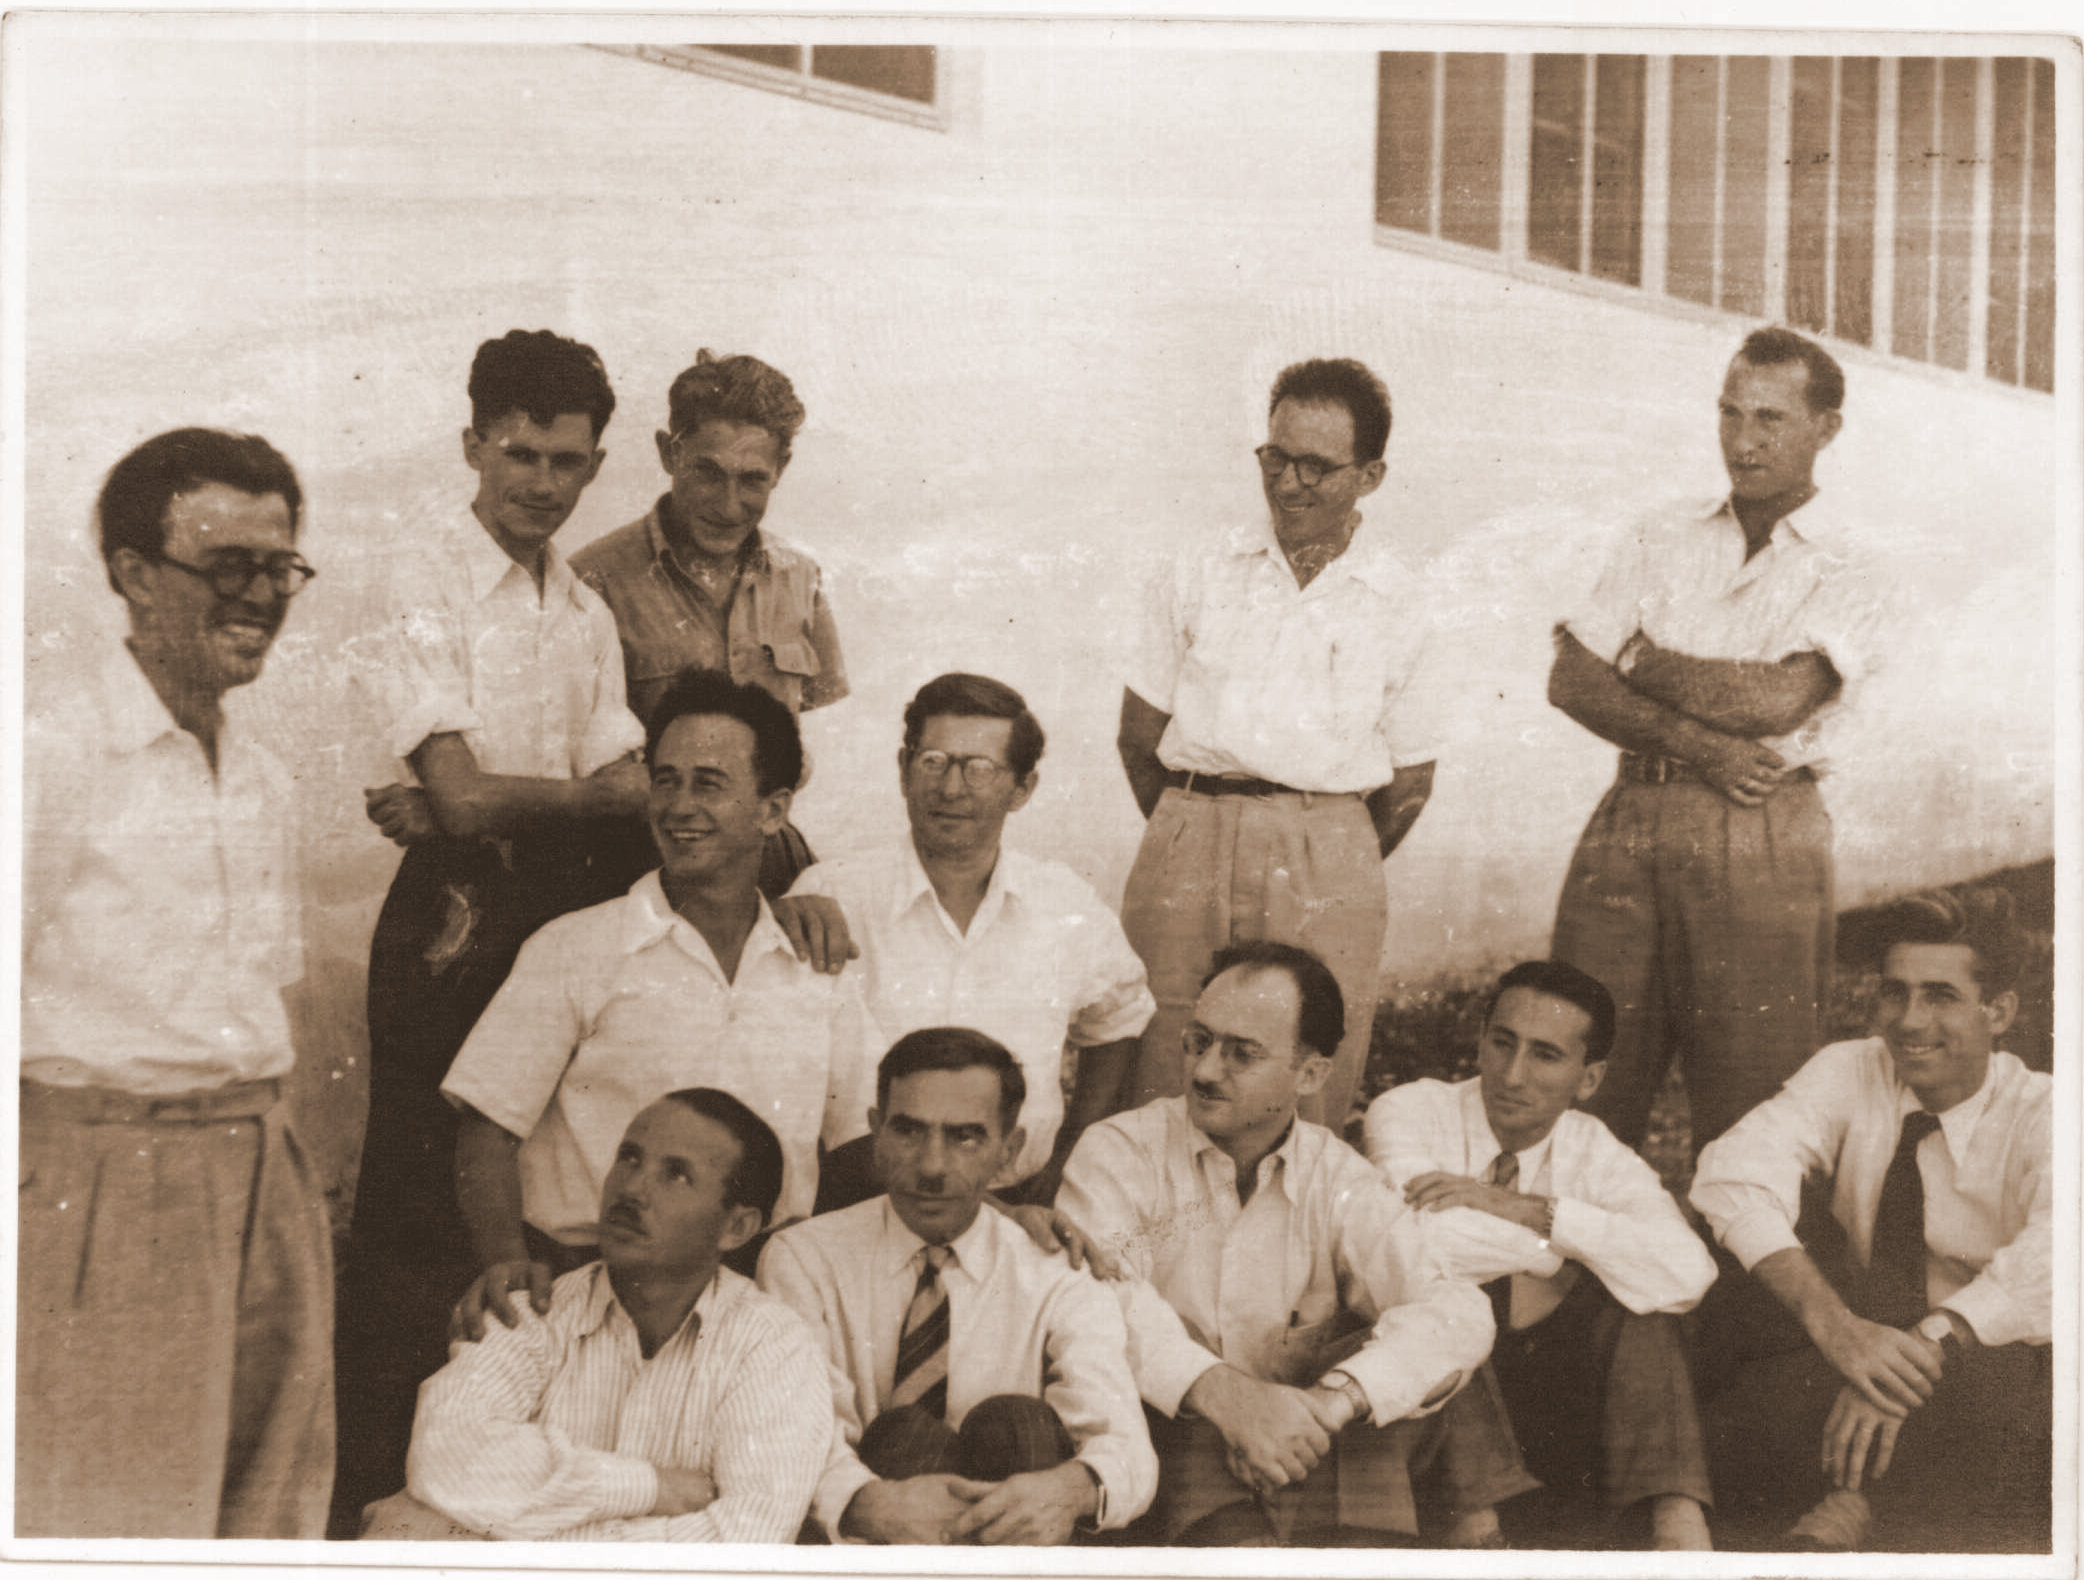 <p>The young Binyomin Harshav together with the founding members of <em>Yung Yisroel</em>, including Abraham&nbsp;Sutzkever.</p>